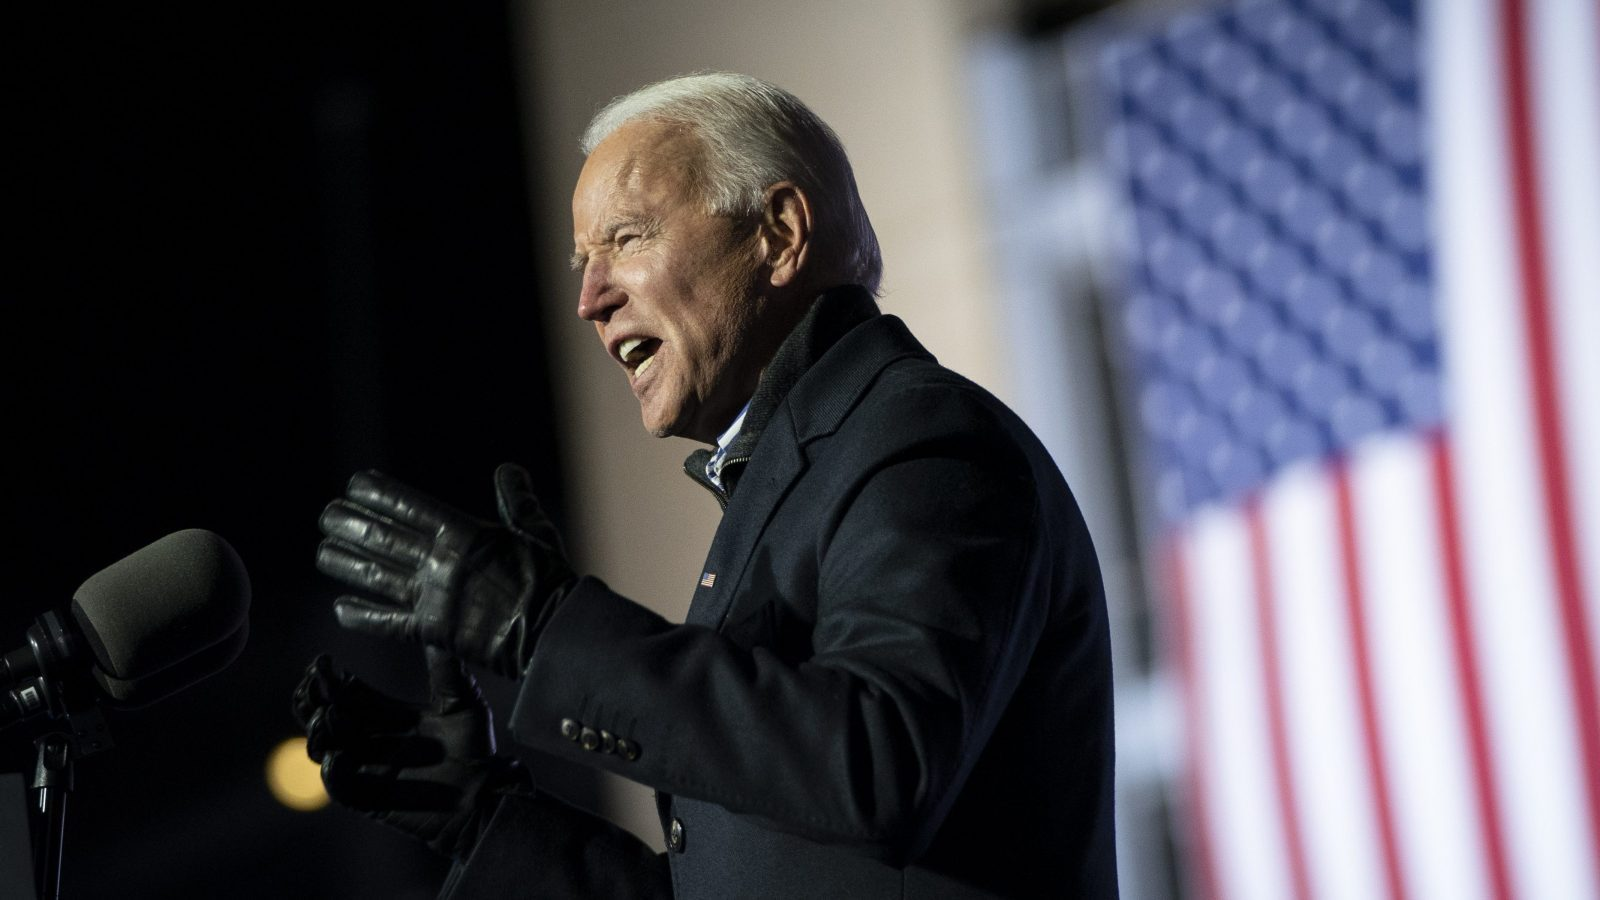 A photo of Joe Biden at a podium speaking. He is wearing a dark coat and dark gloves.